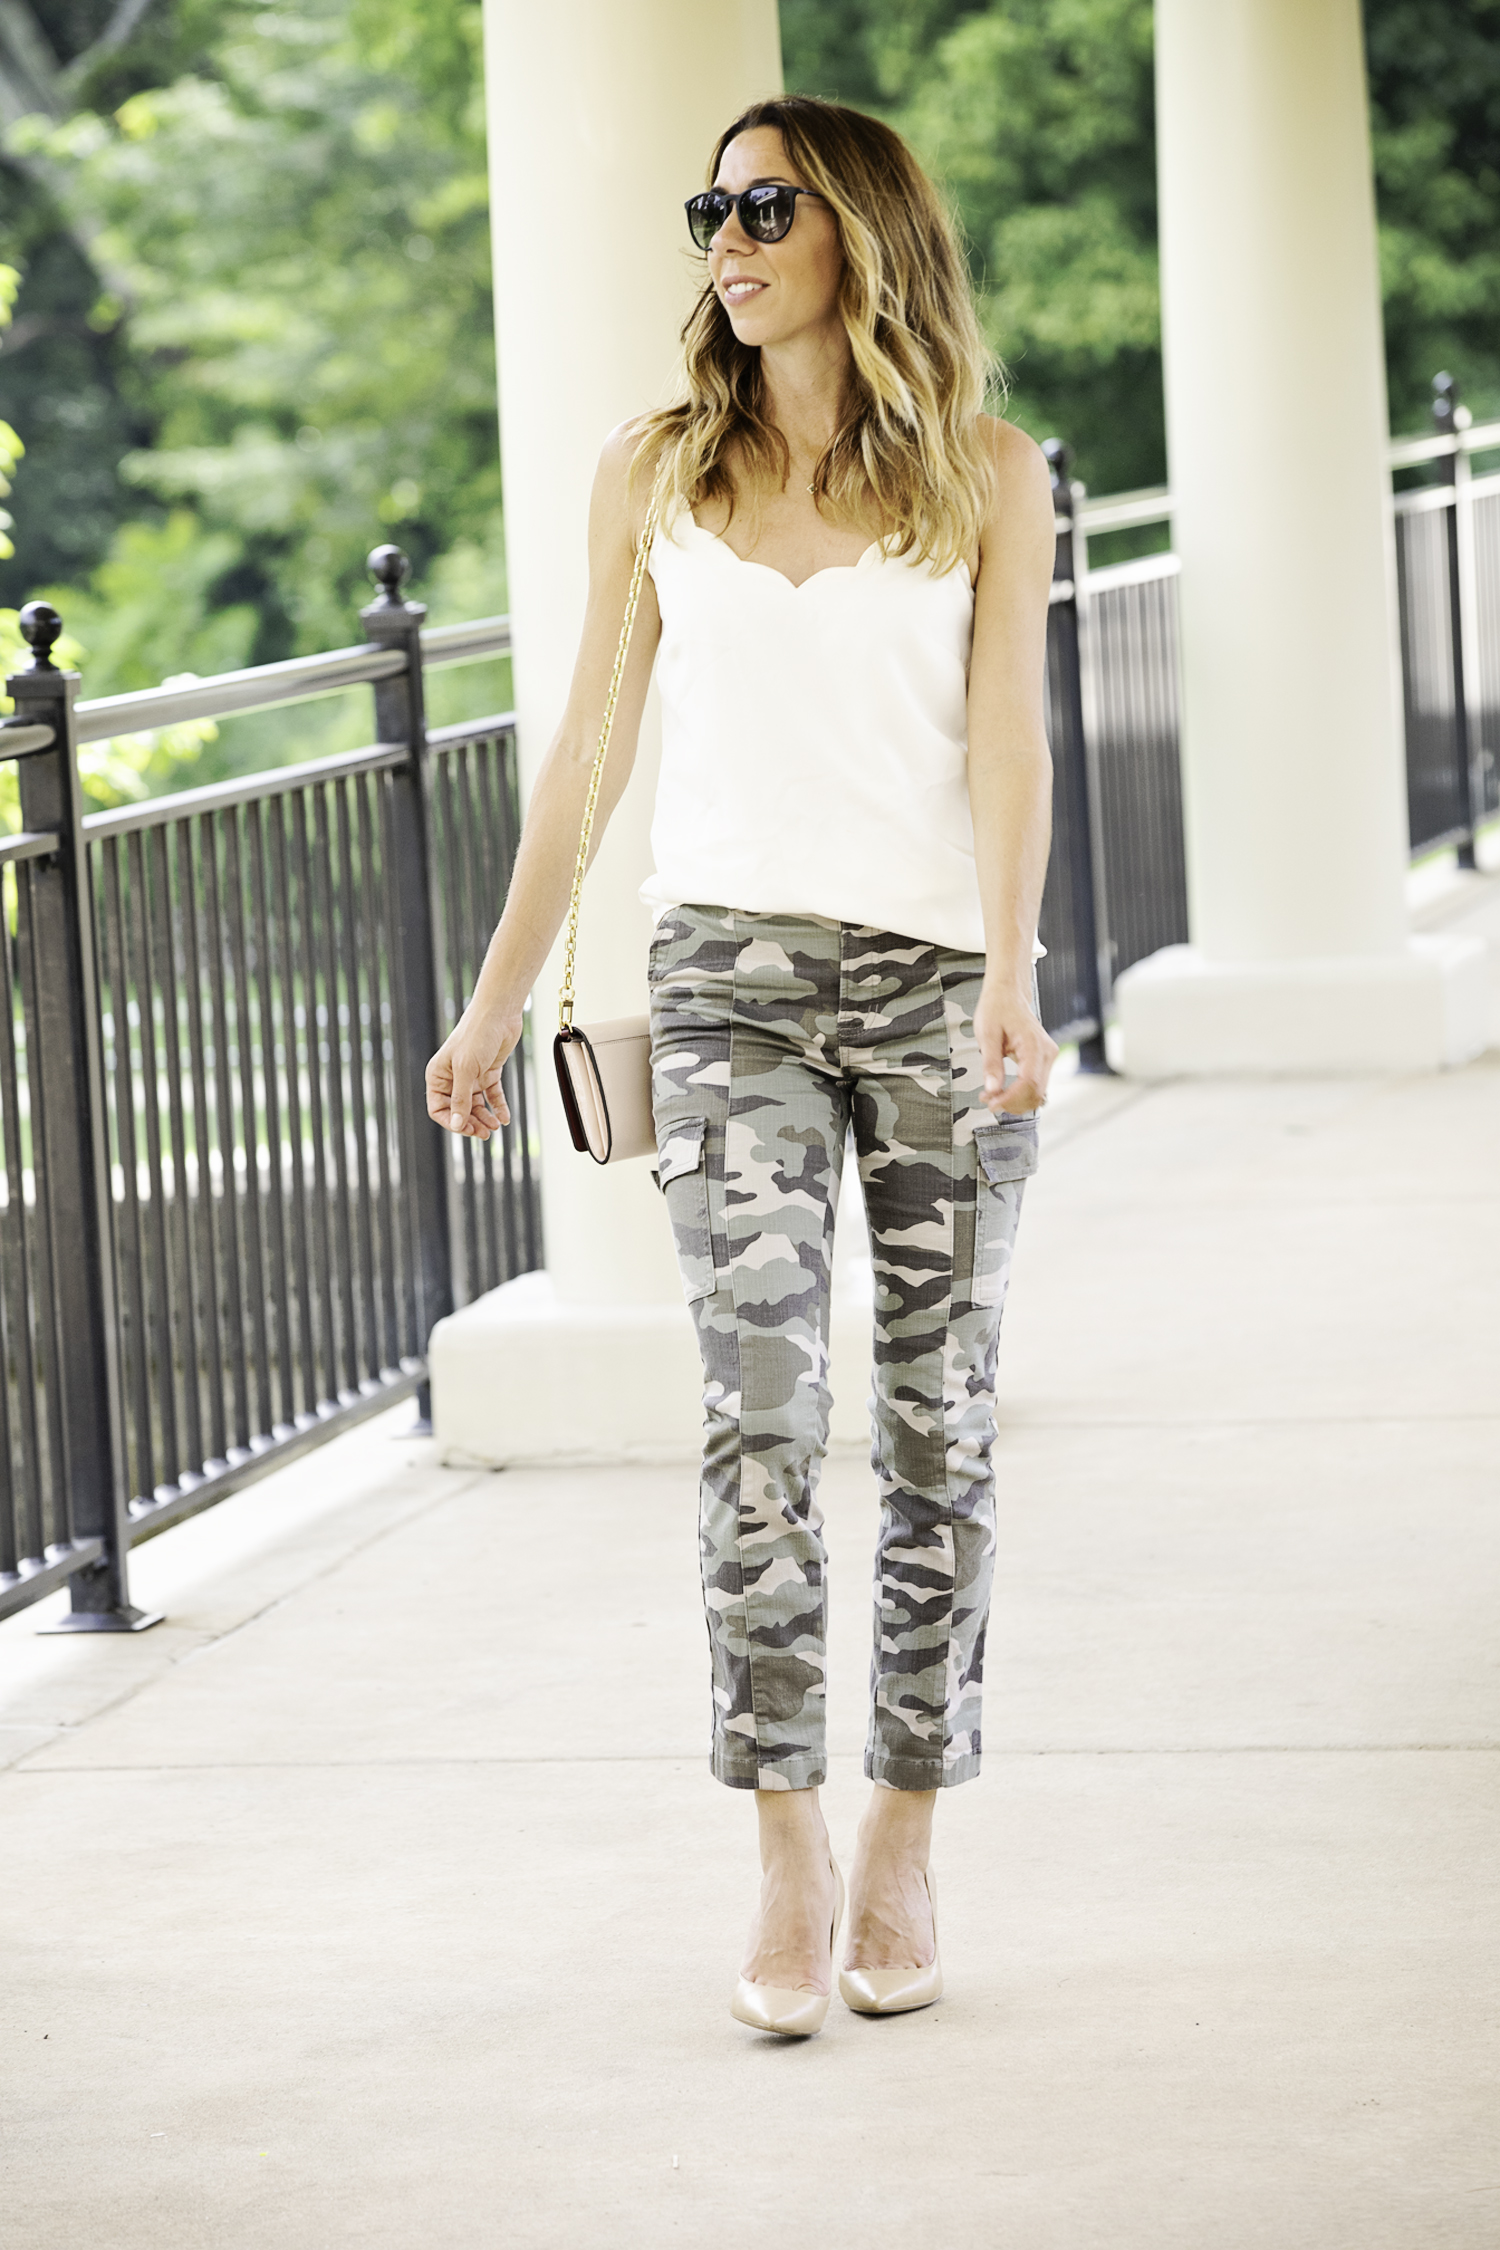 the motherchic wearing camo pants and scalloped camisole